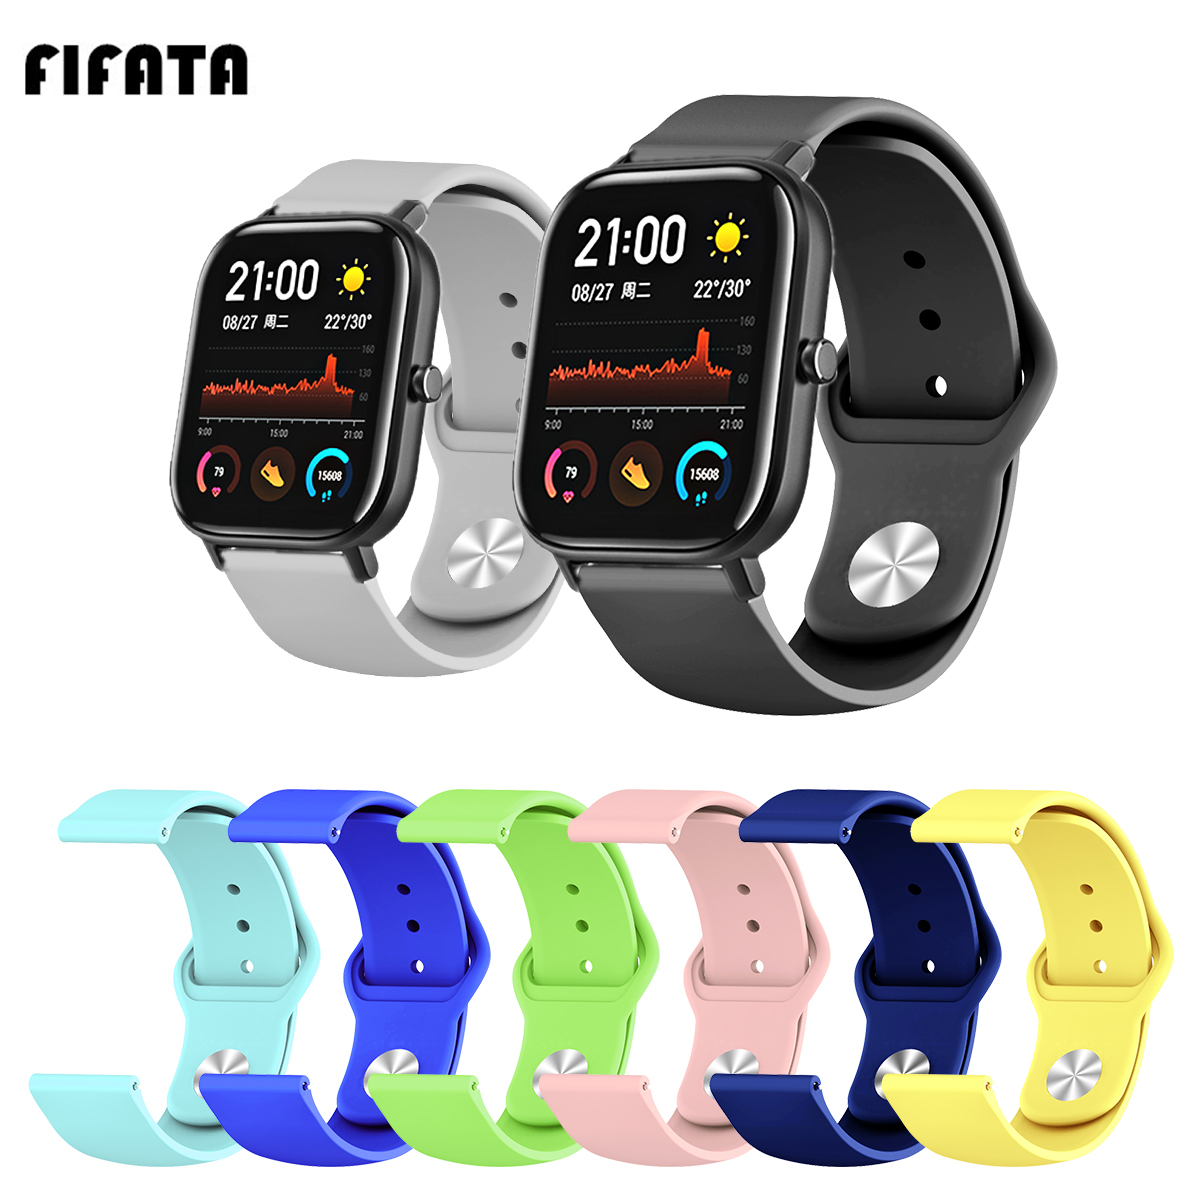 FIFATA 20/22MM Colorful Silicone Watch Strap For Huami Amazfit GTS Smartwatch Wristband For Huami Amazfit Stratos Accessories